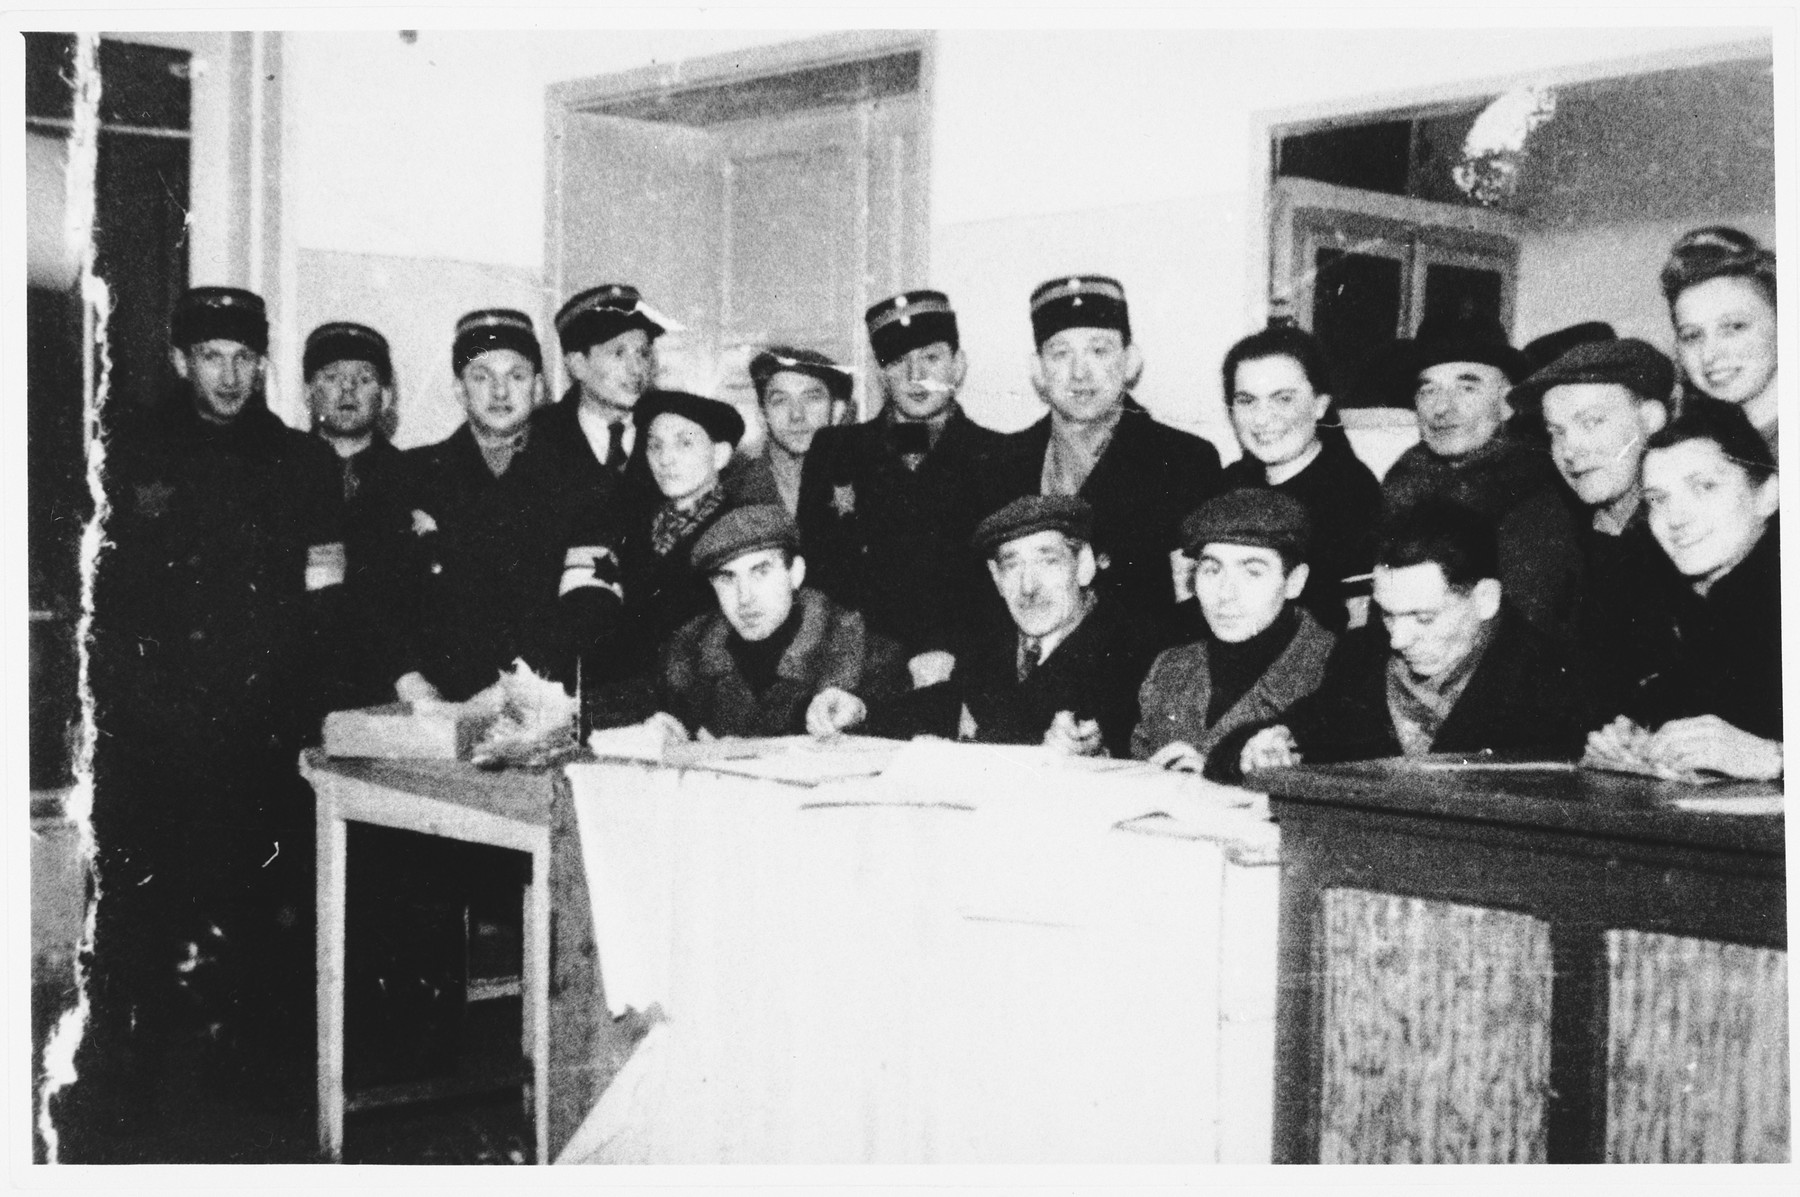 Members of the Jewish police pose with administrators in an office in the Lodz ghetto.